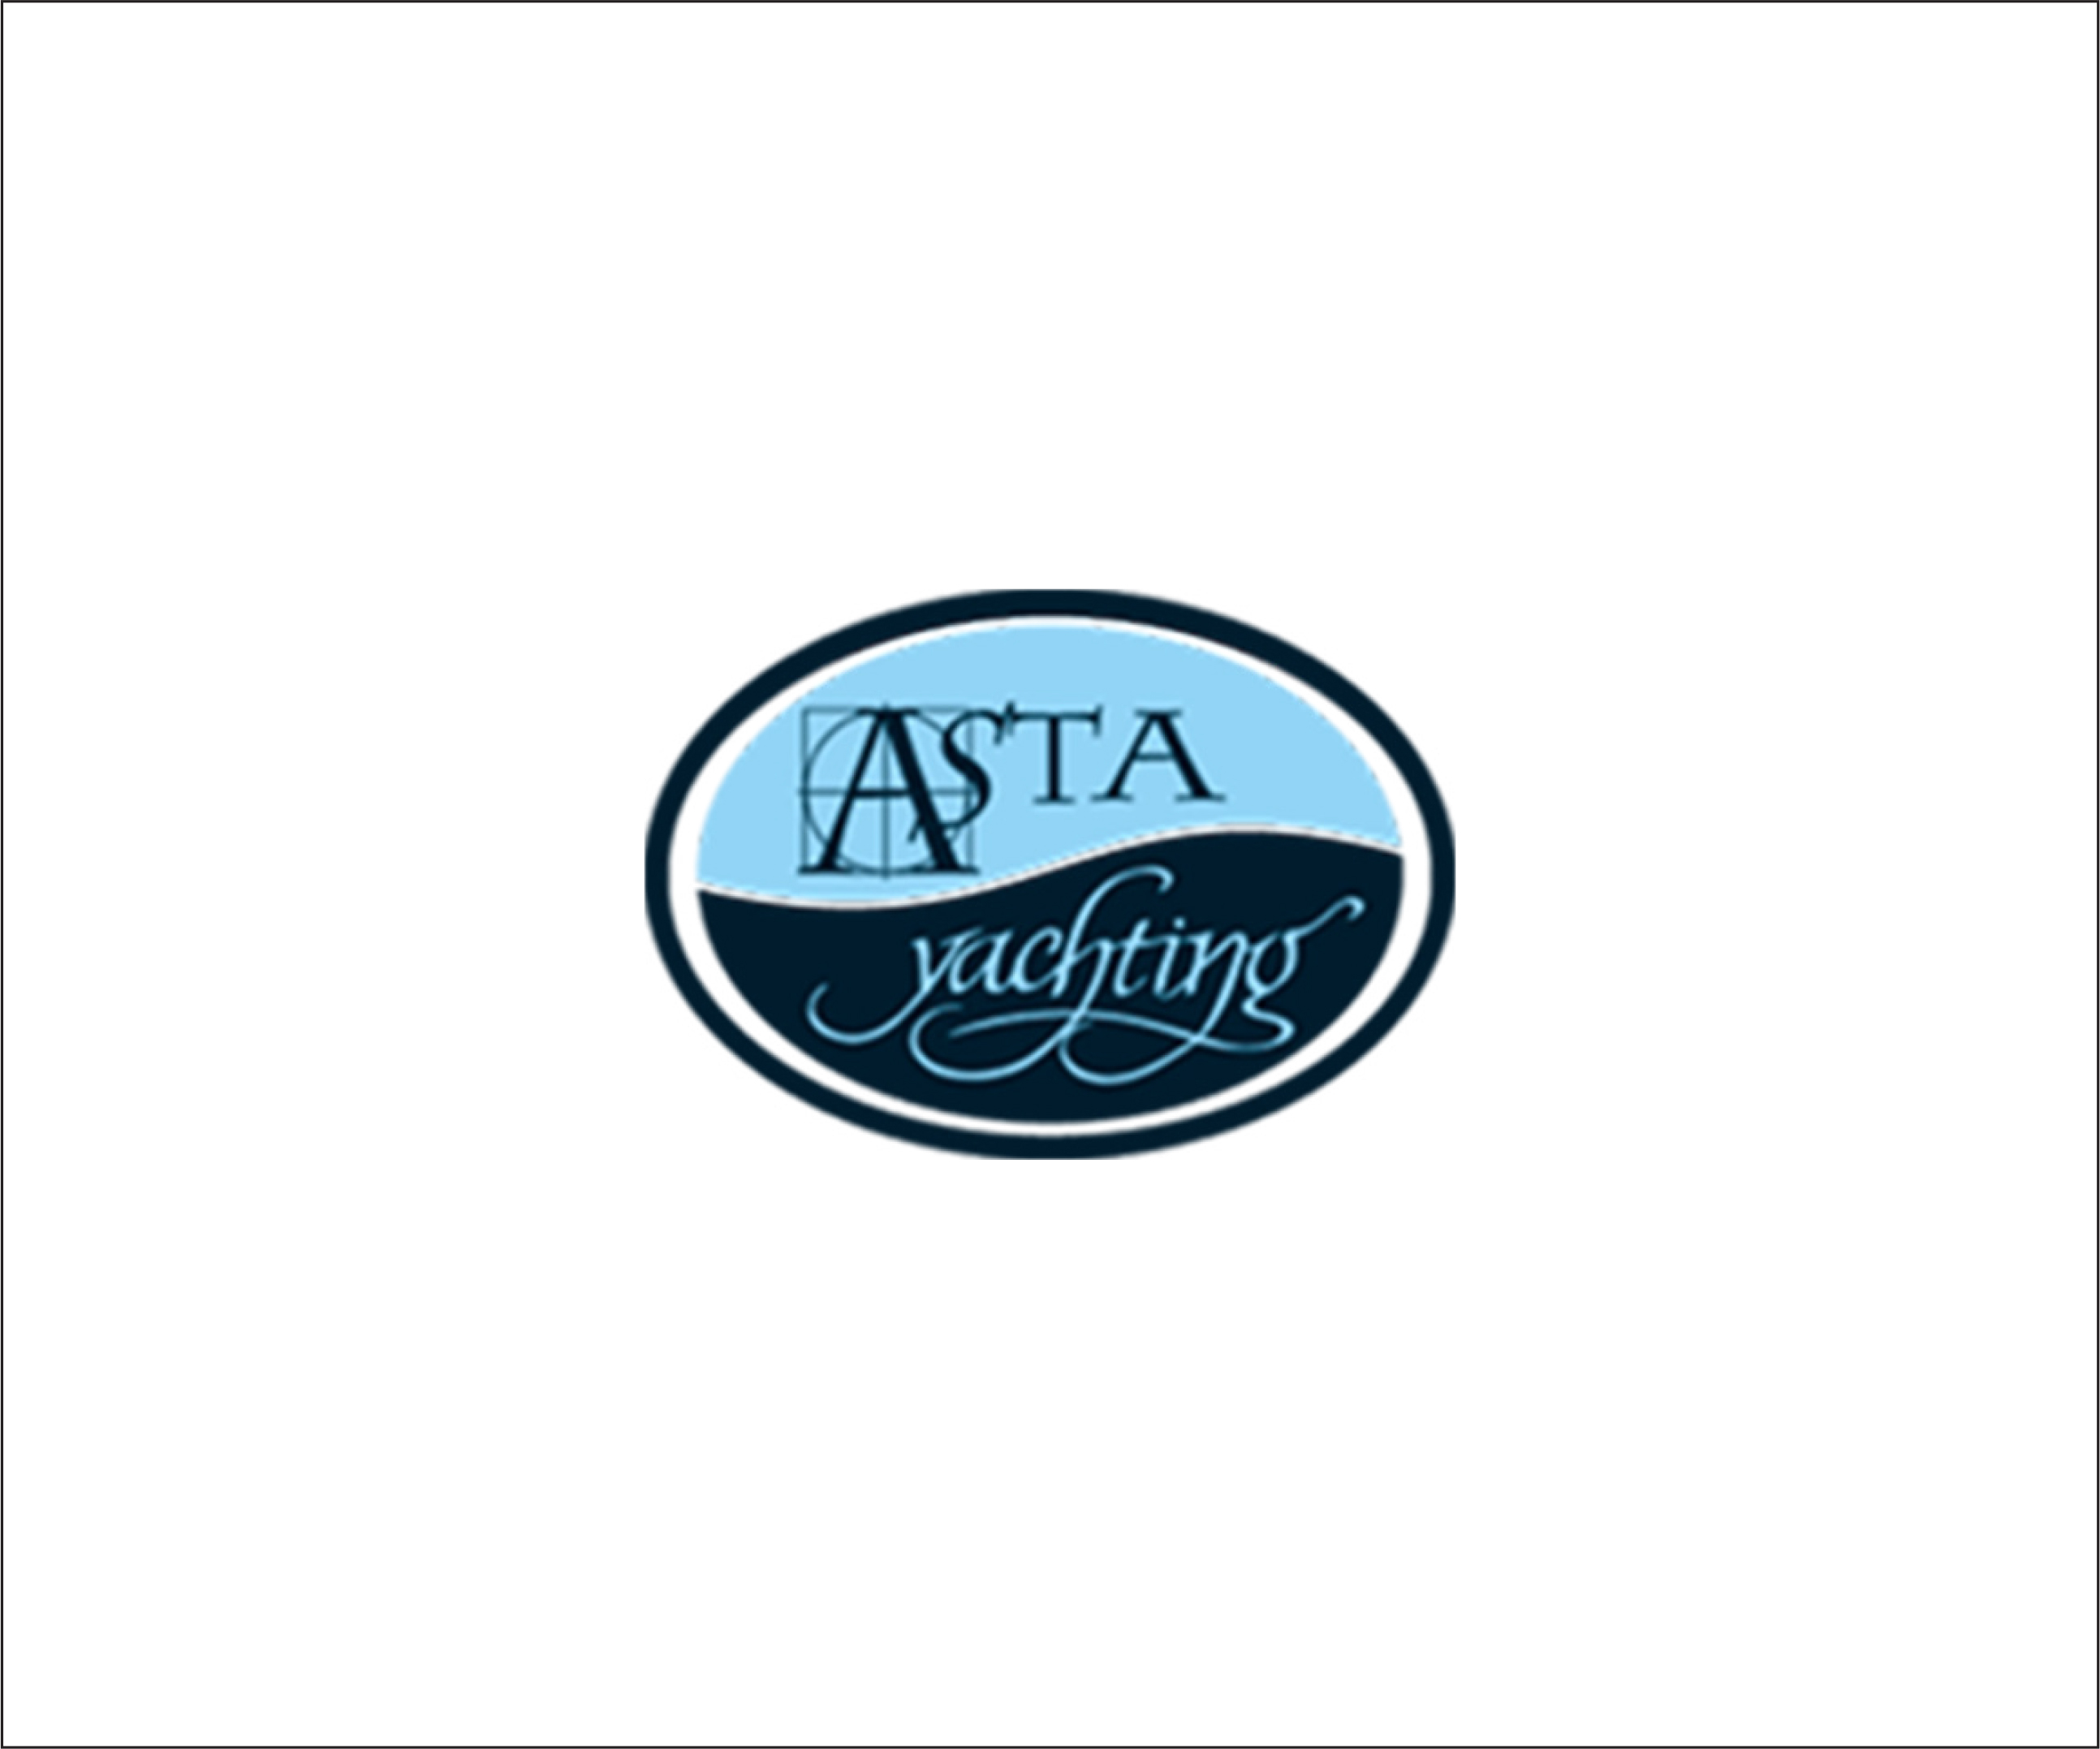 Asta Yachting - 2021 Is The Year of Your Yacht Charter in Croatia